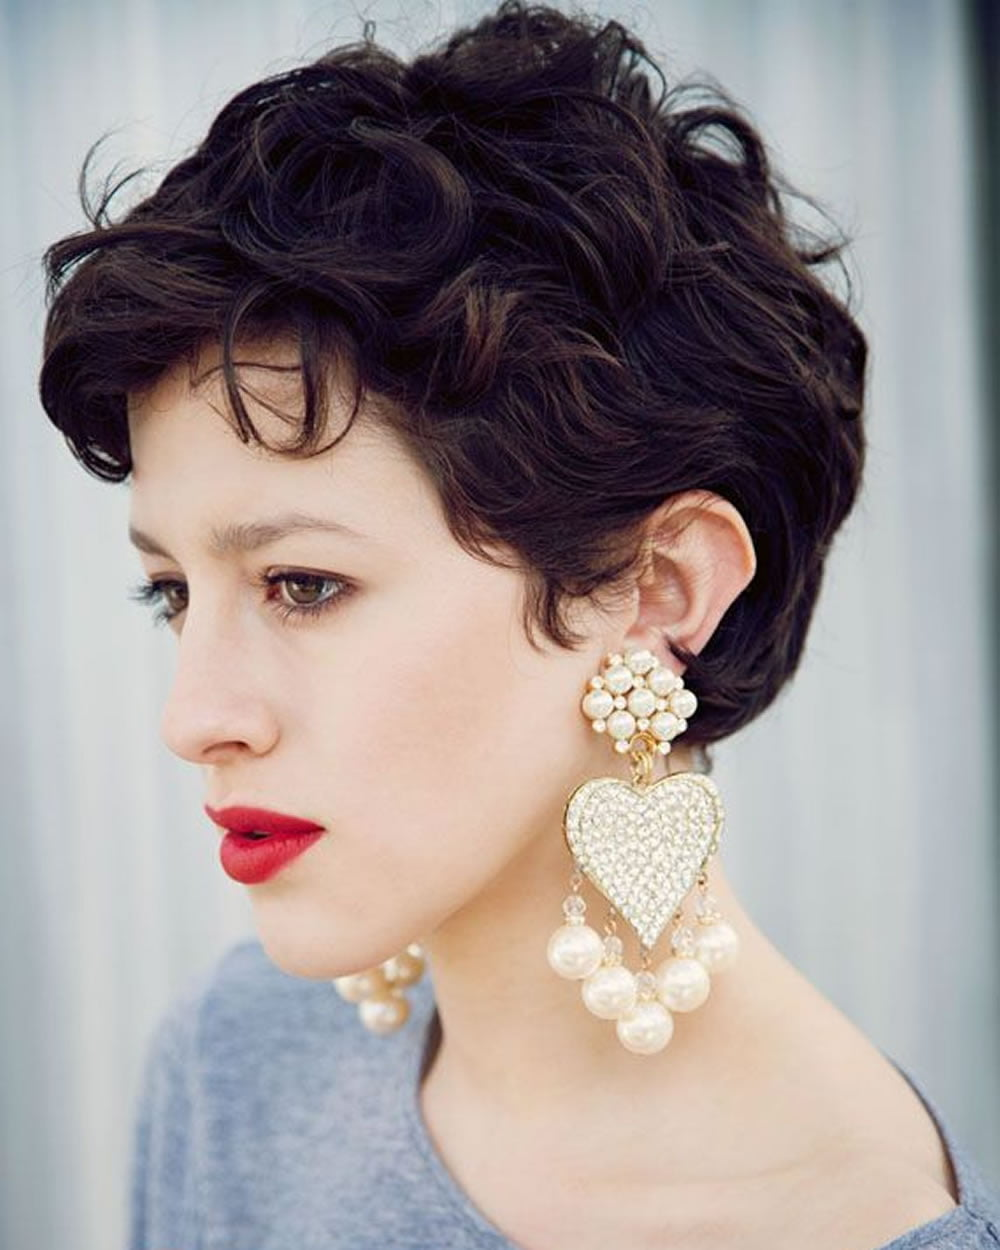 Short Curly Pixie Haircuts 2017